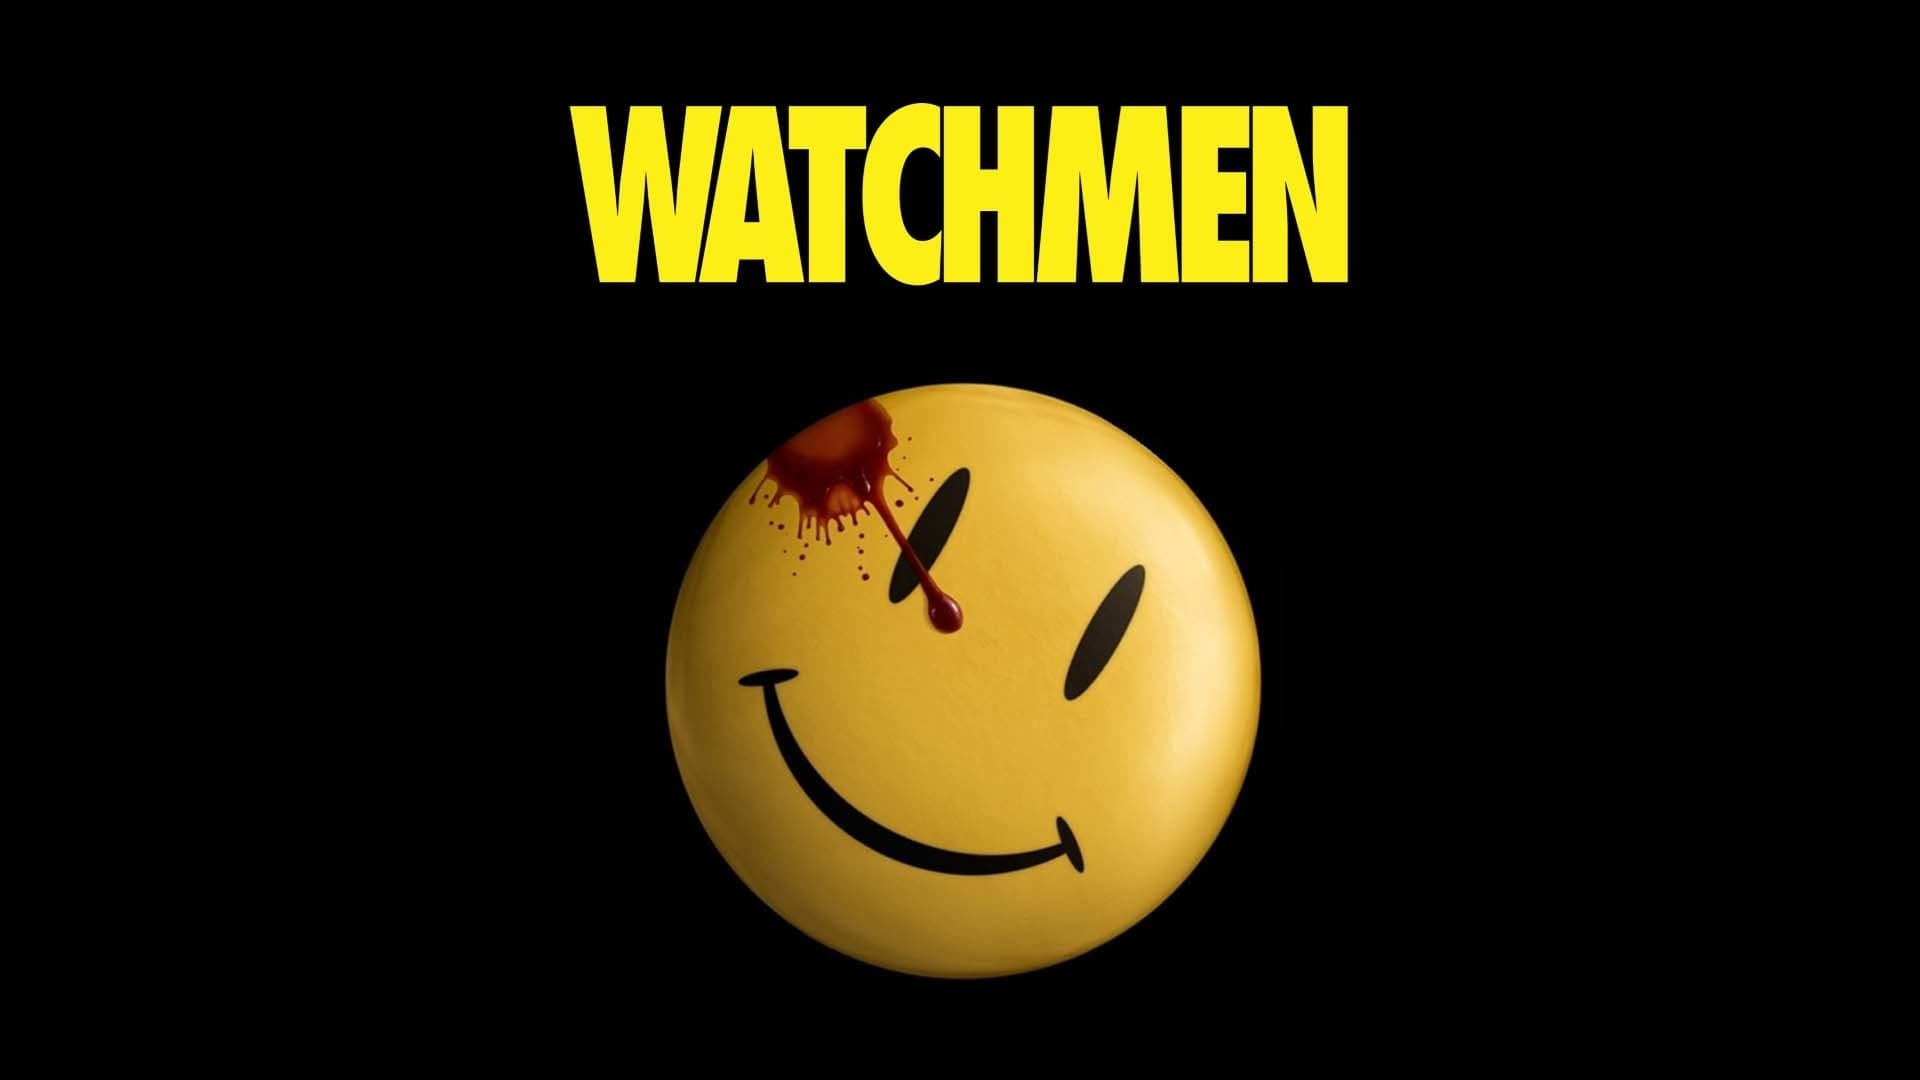 Watchmen movie cinema